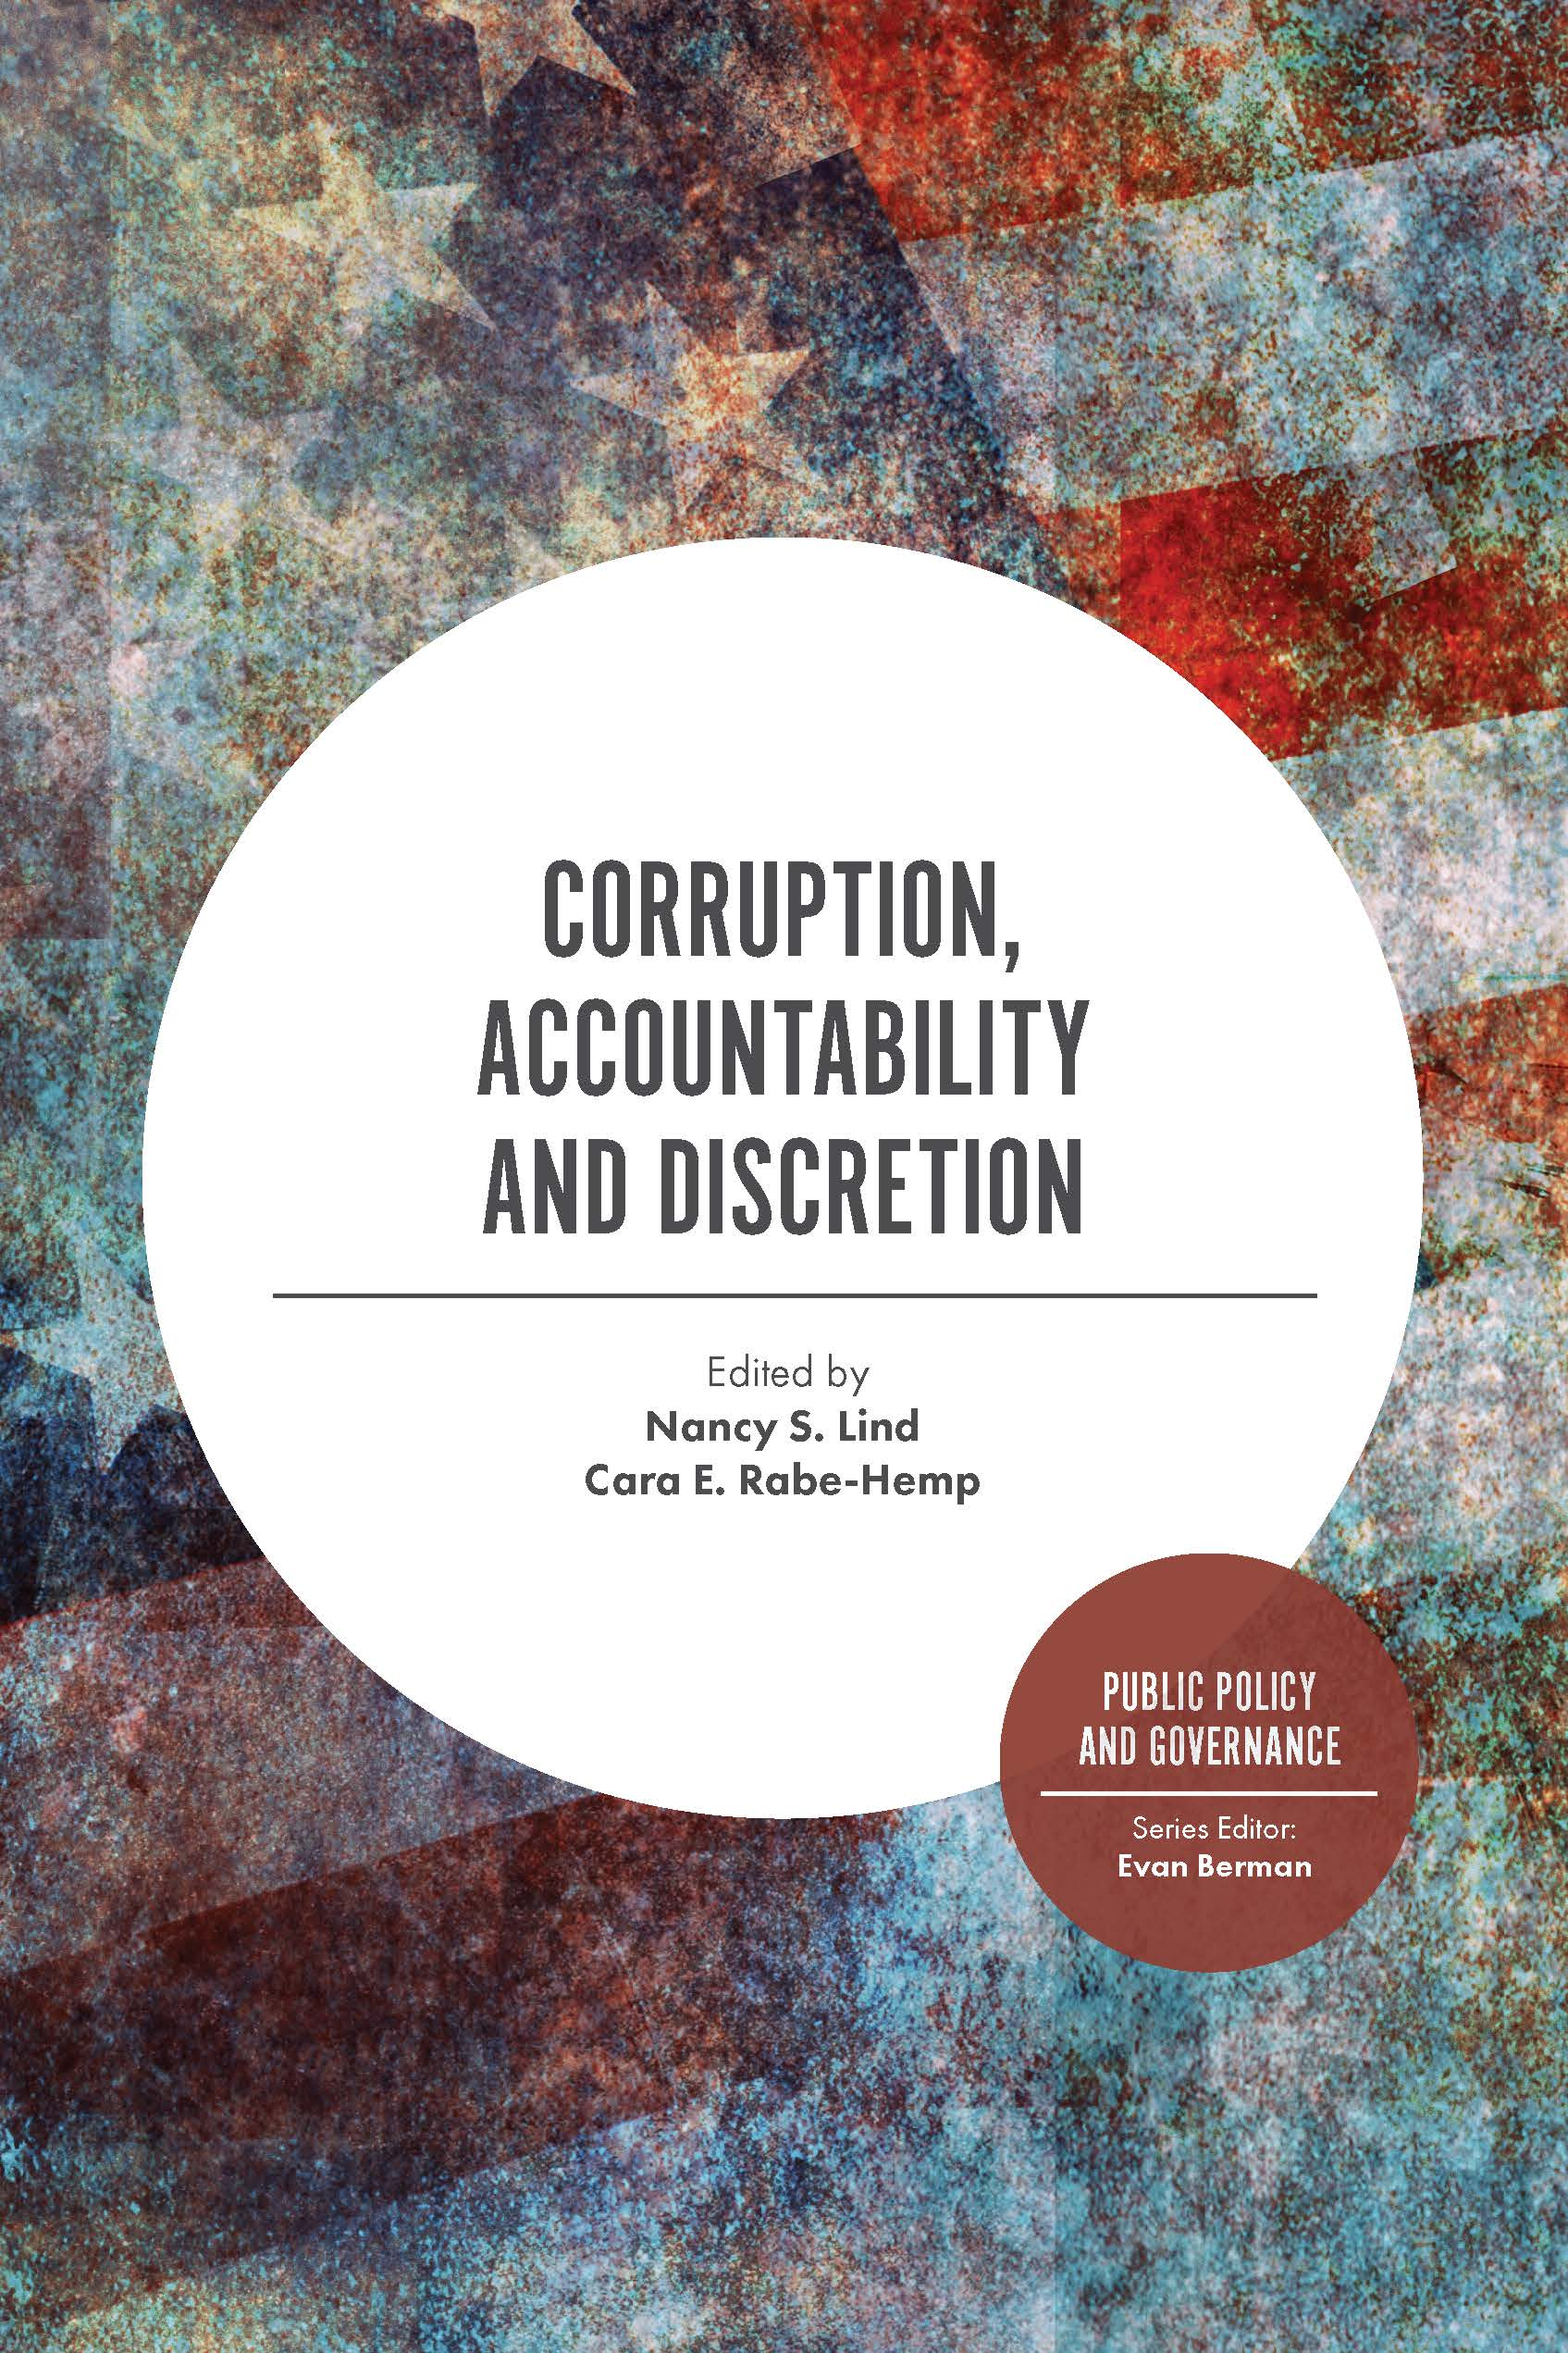 Book cover for Corruption, Accountability and Discretion a book by Professor Nancy S. Lind, Cara E. Rabe-Hemp